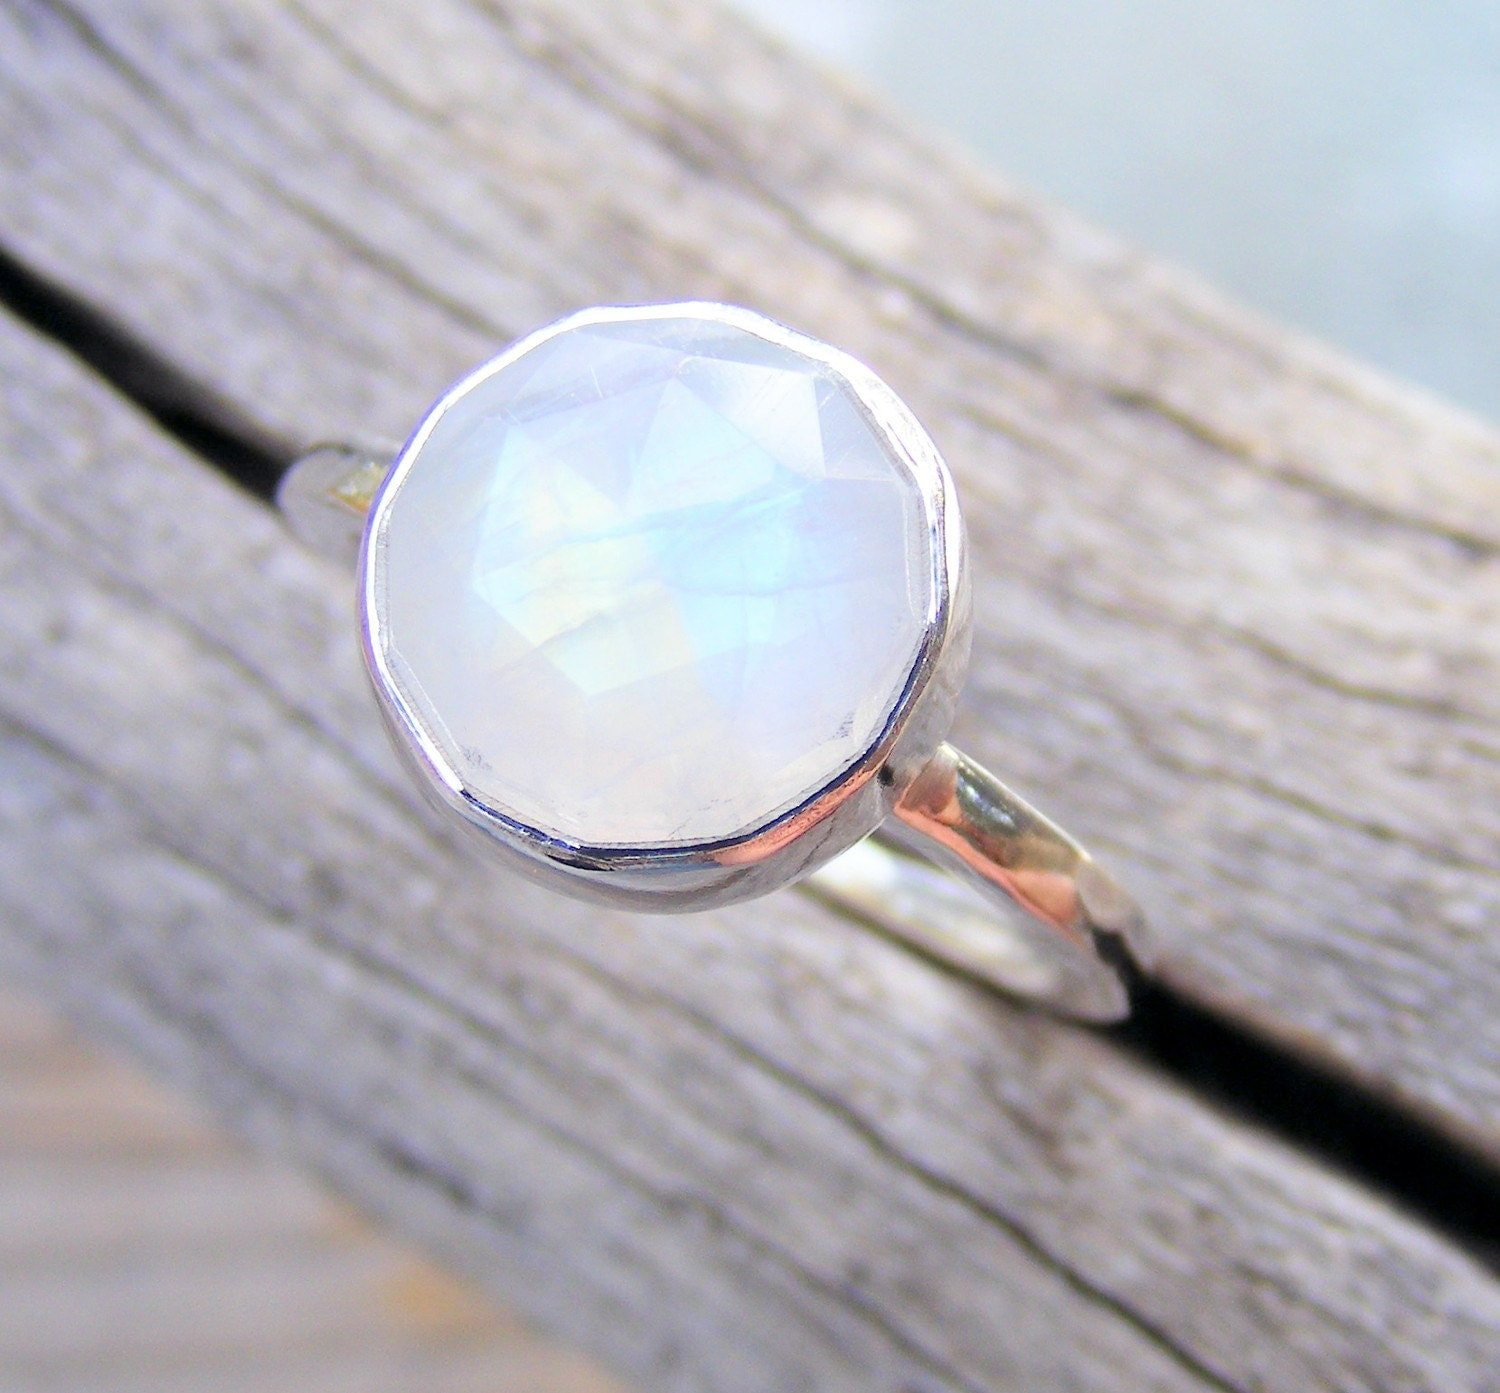 Silver Ring With Rainbow Stone